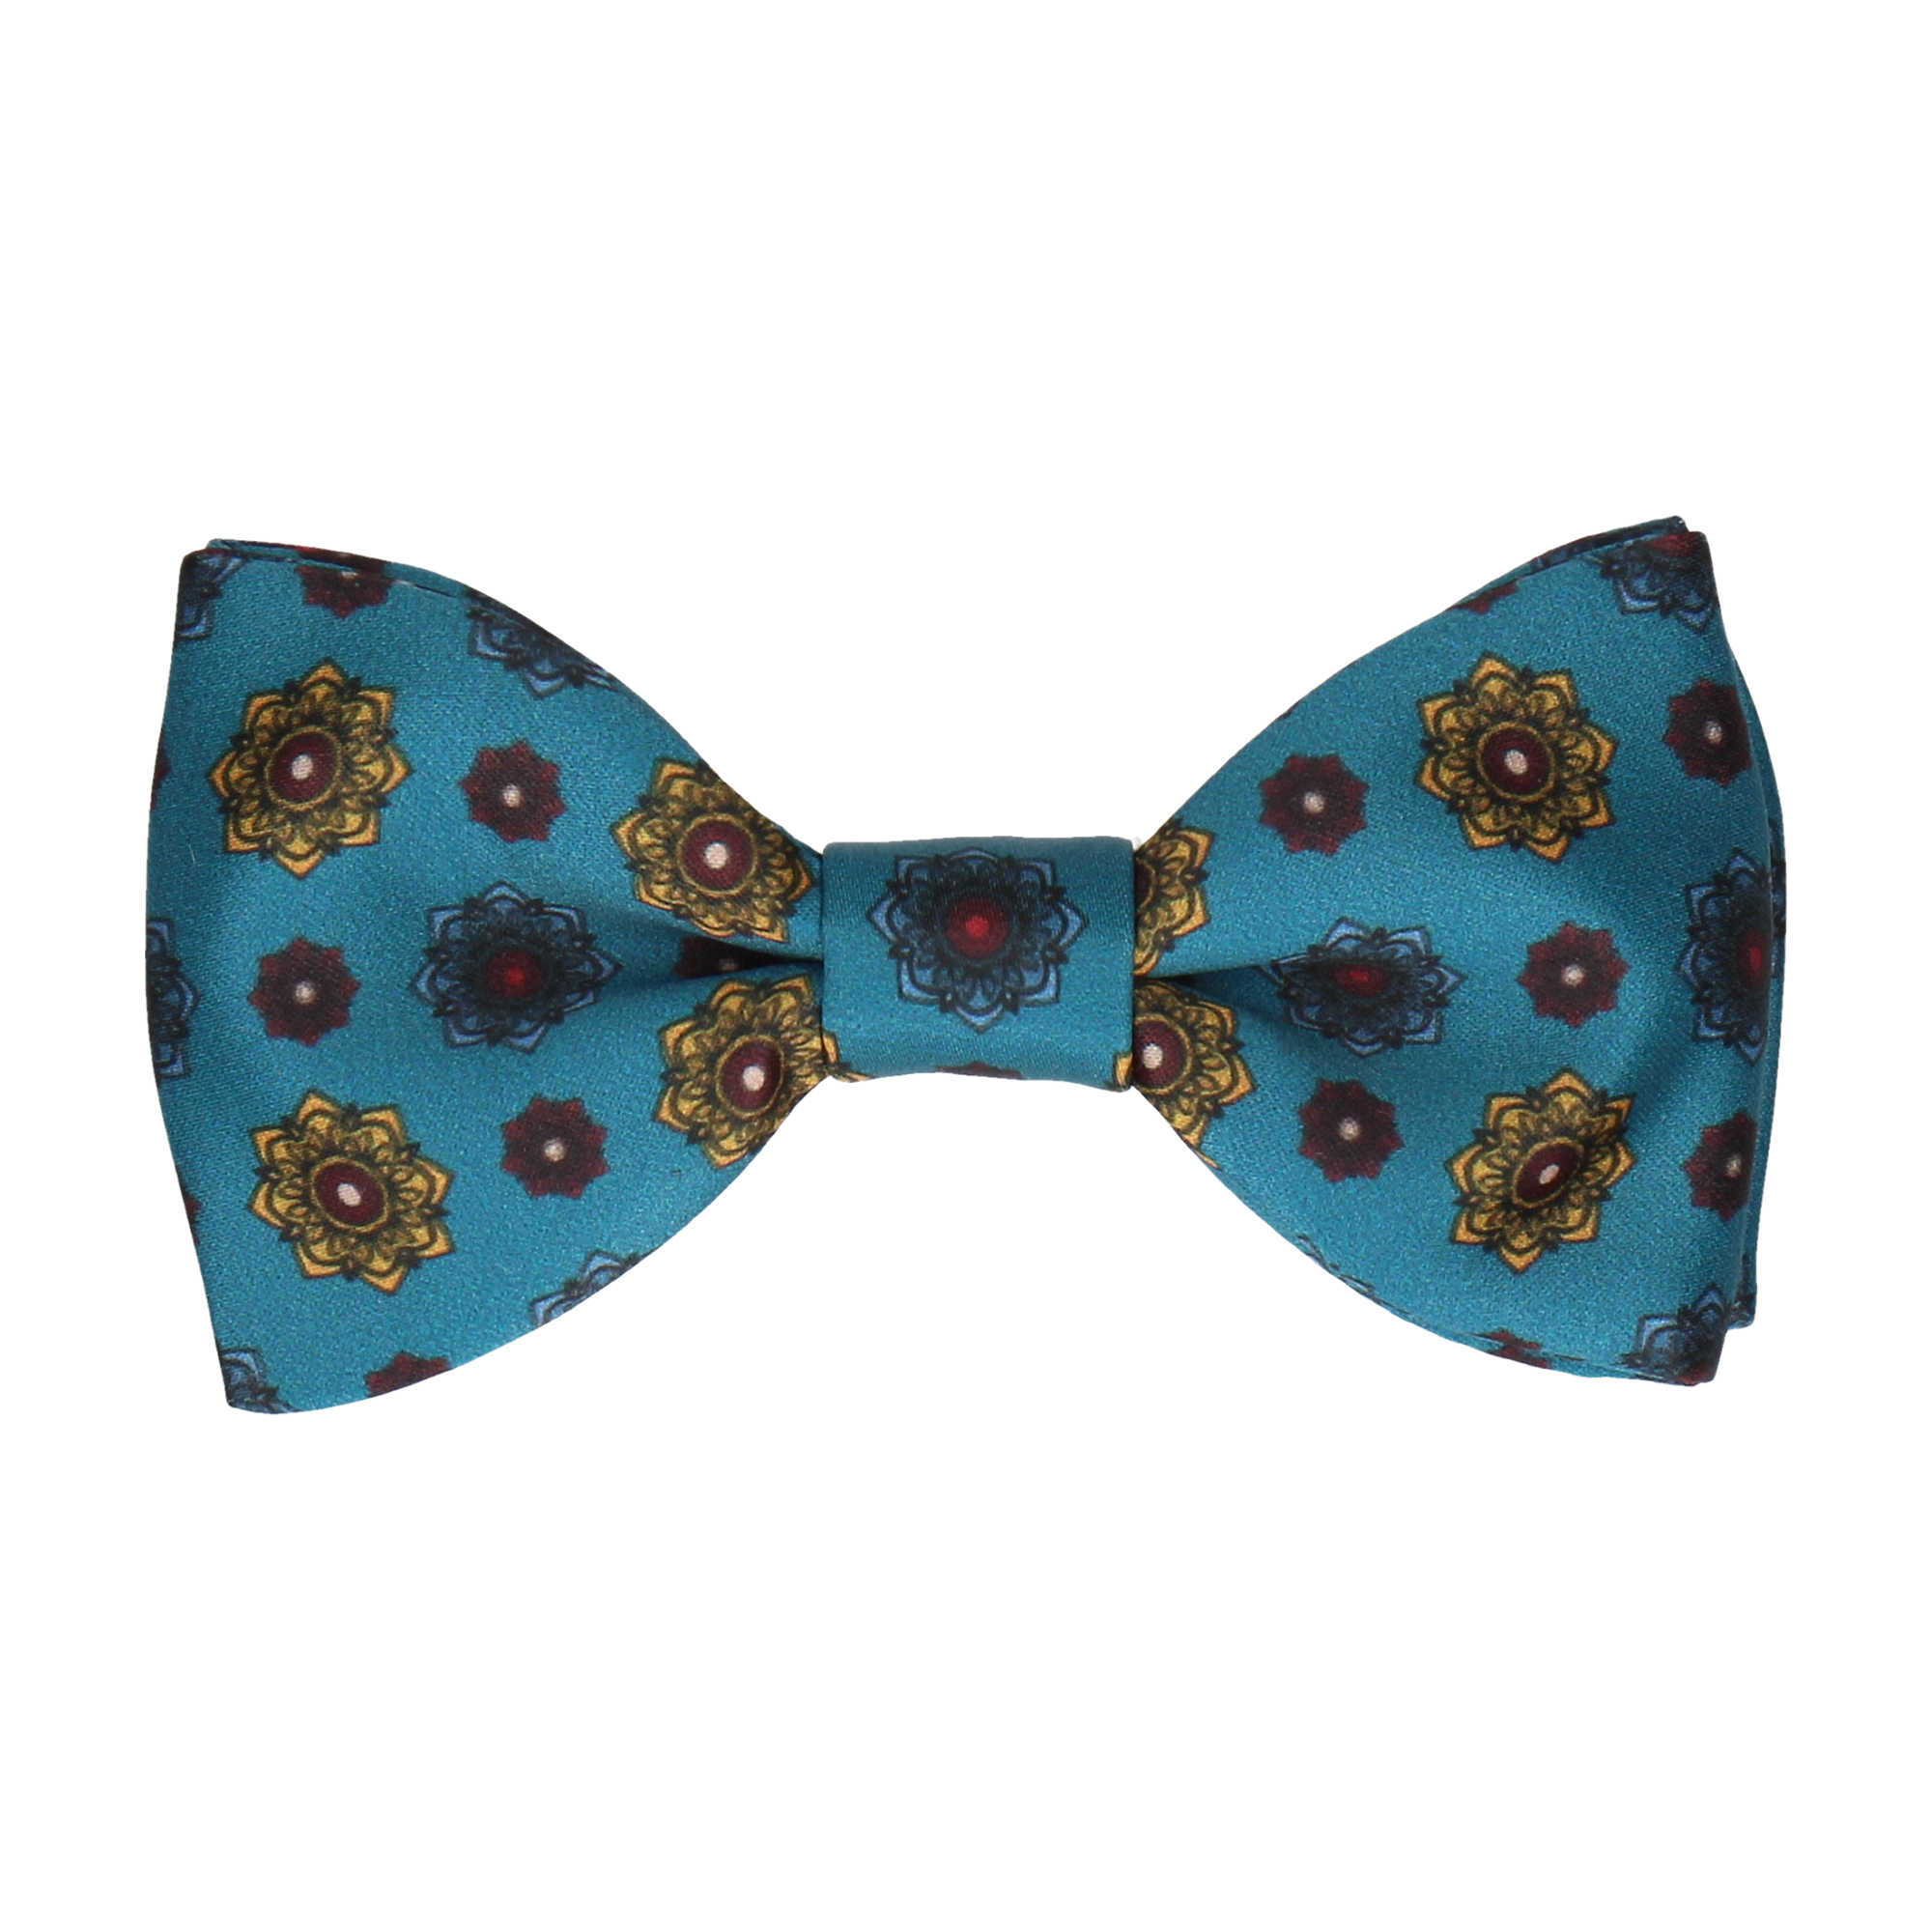 Bloomberg Emerald Sea Teal Medallion Bow Tie